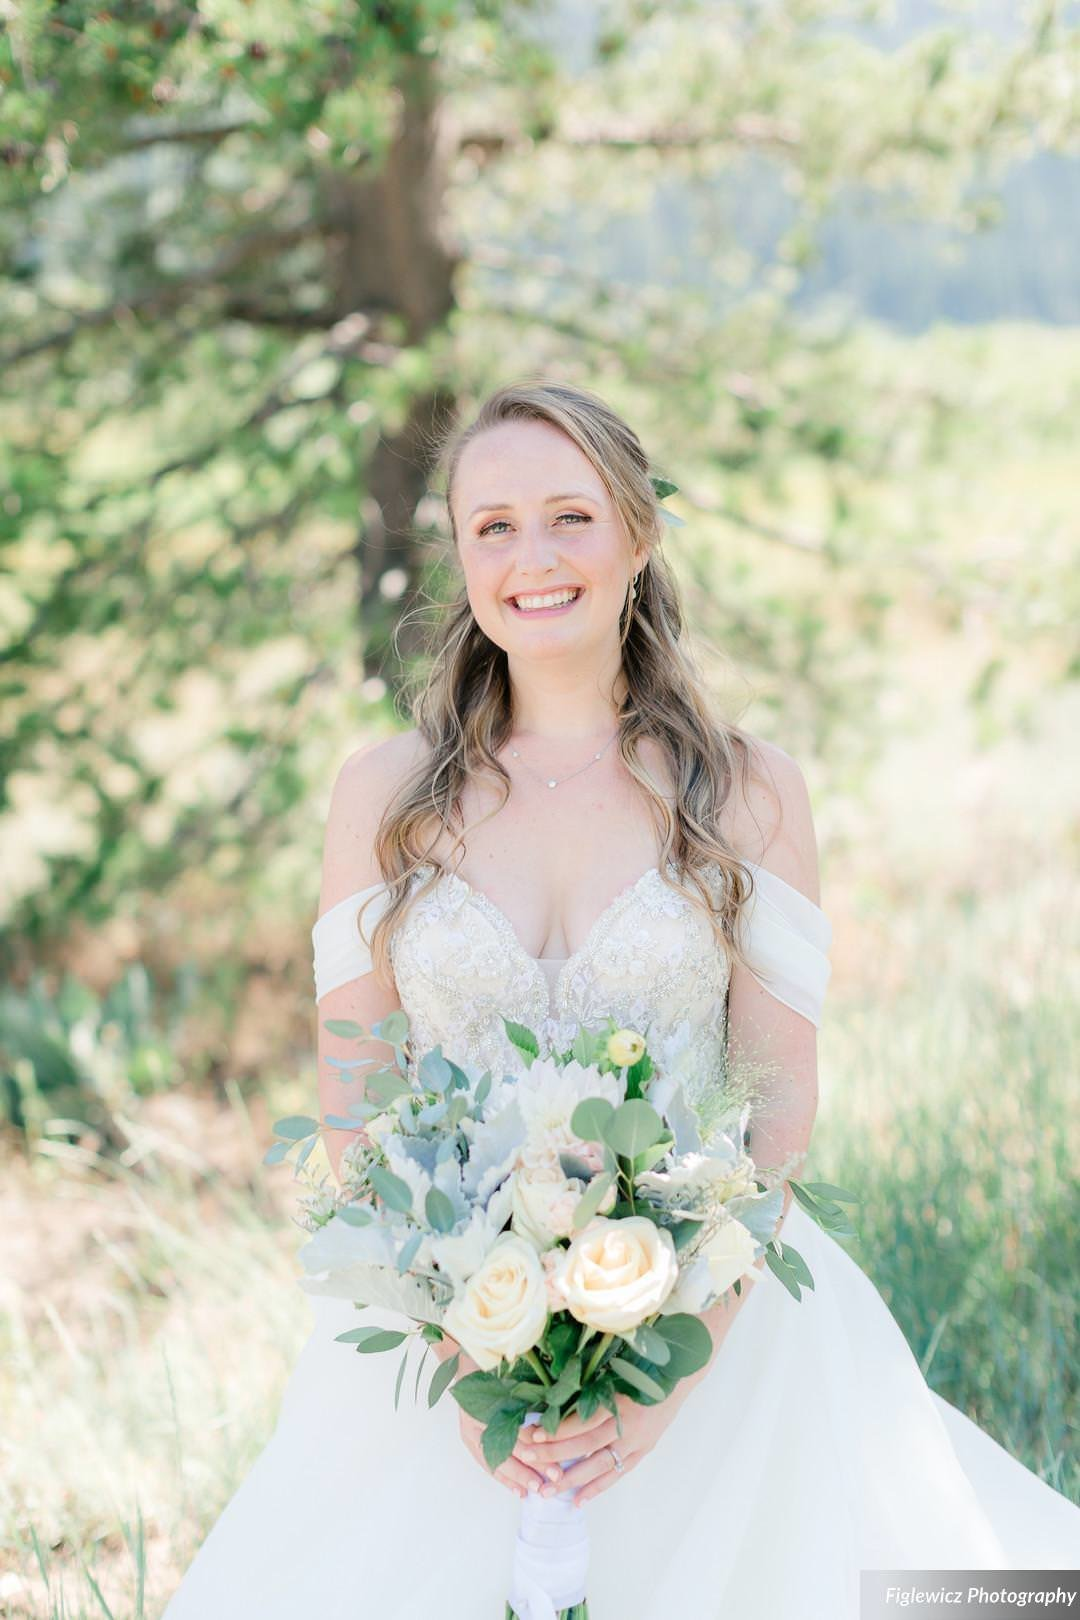 Garden_Tinsley_FiglewiczPhotography_LakeTahoeWeddingSquawValleyCreekTaylorBrendan00037_big